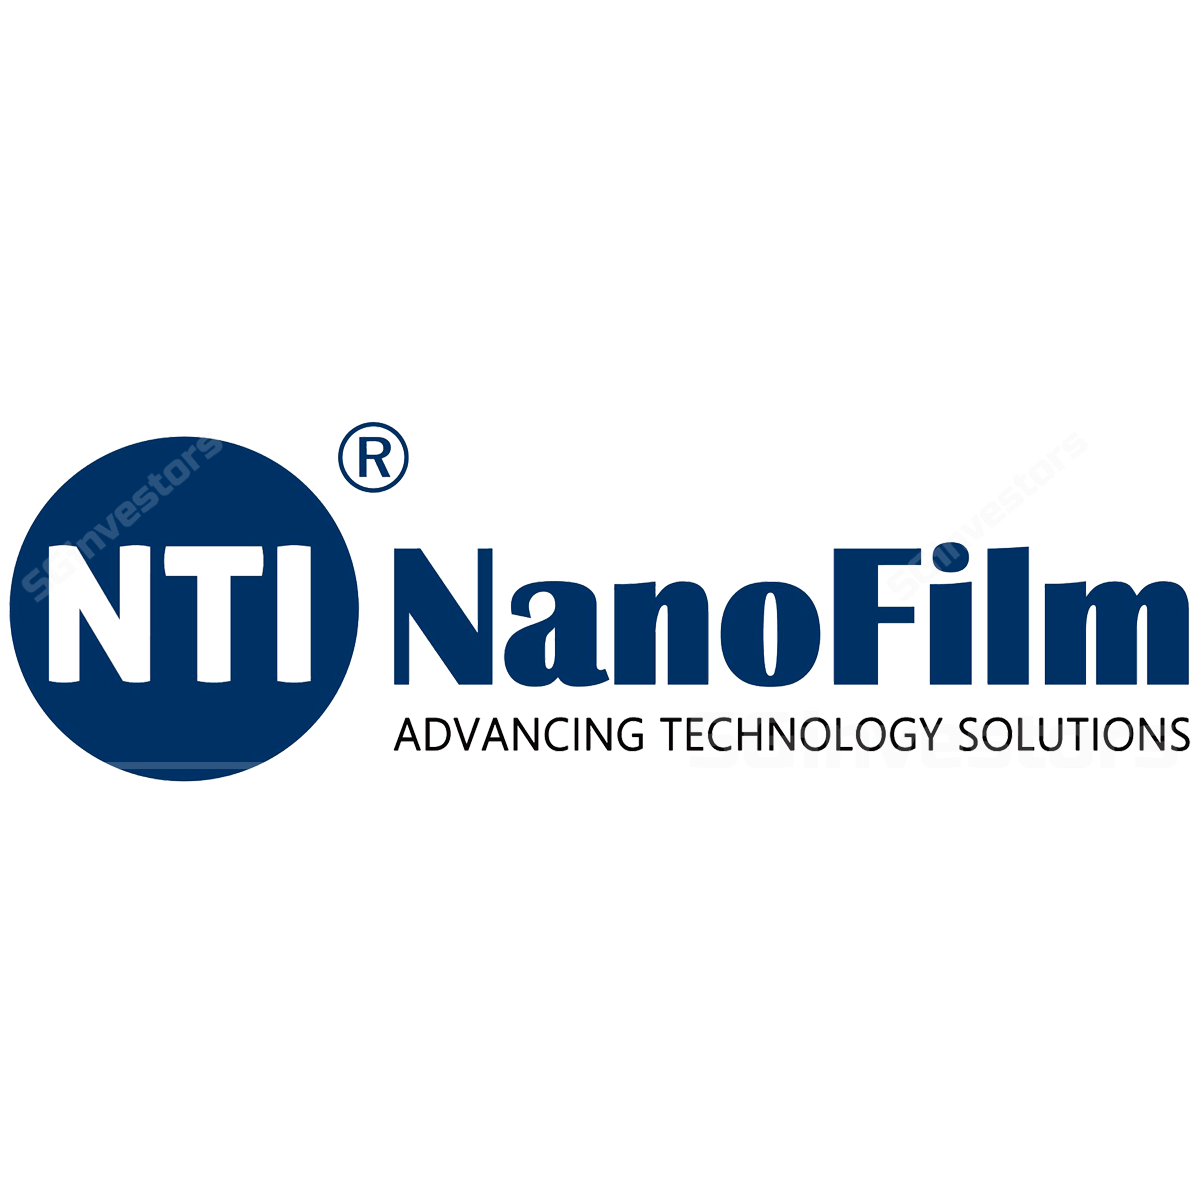 Quick Thoughts on Nanofilm Technology IPO